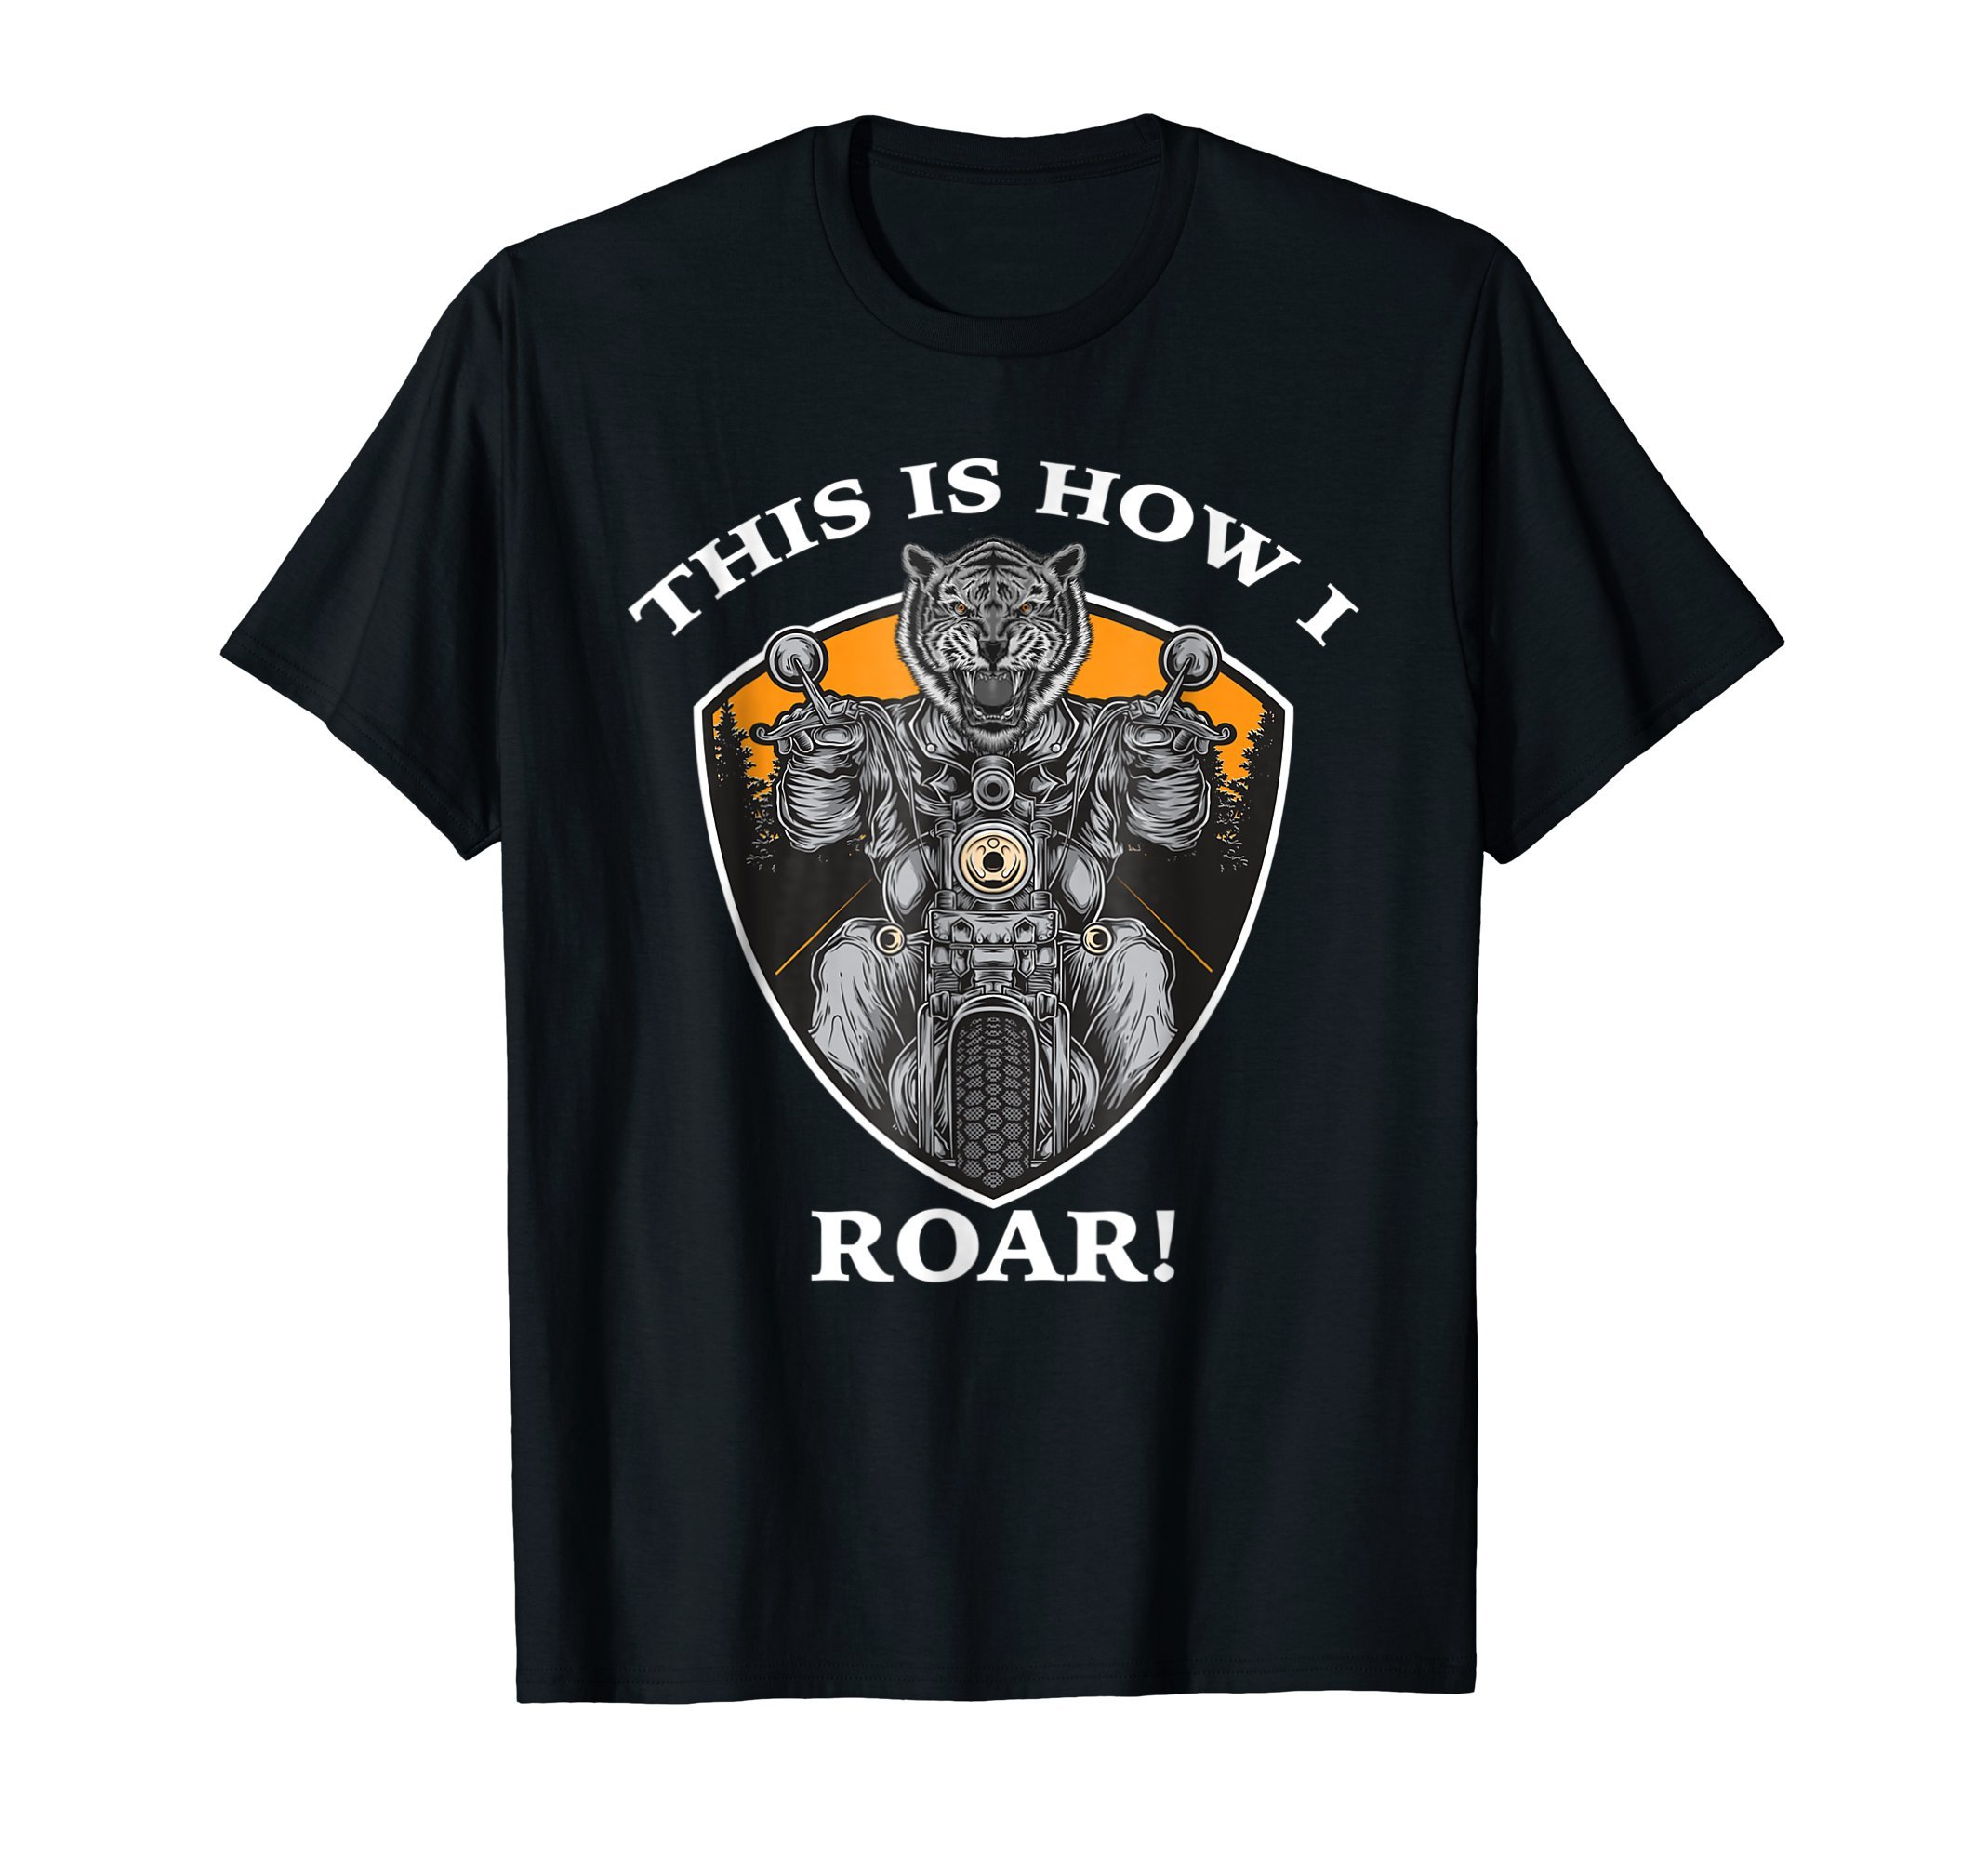 This-is-how-I-ROAR-Motorcycle-Bikers-T-Shirt-Tees-Shirt